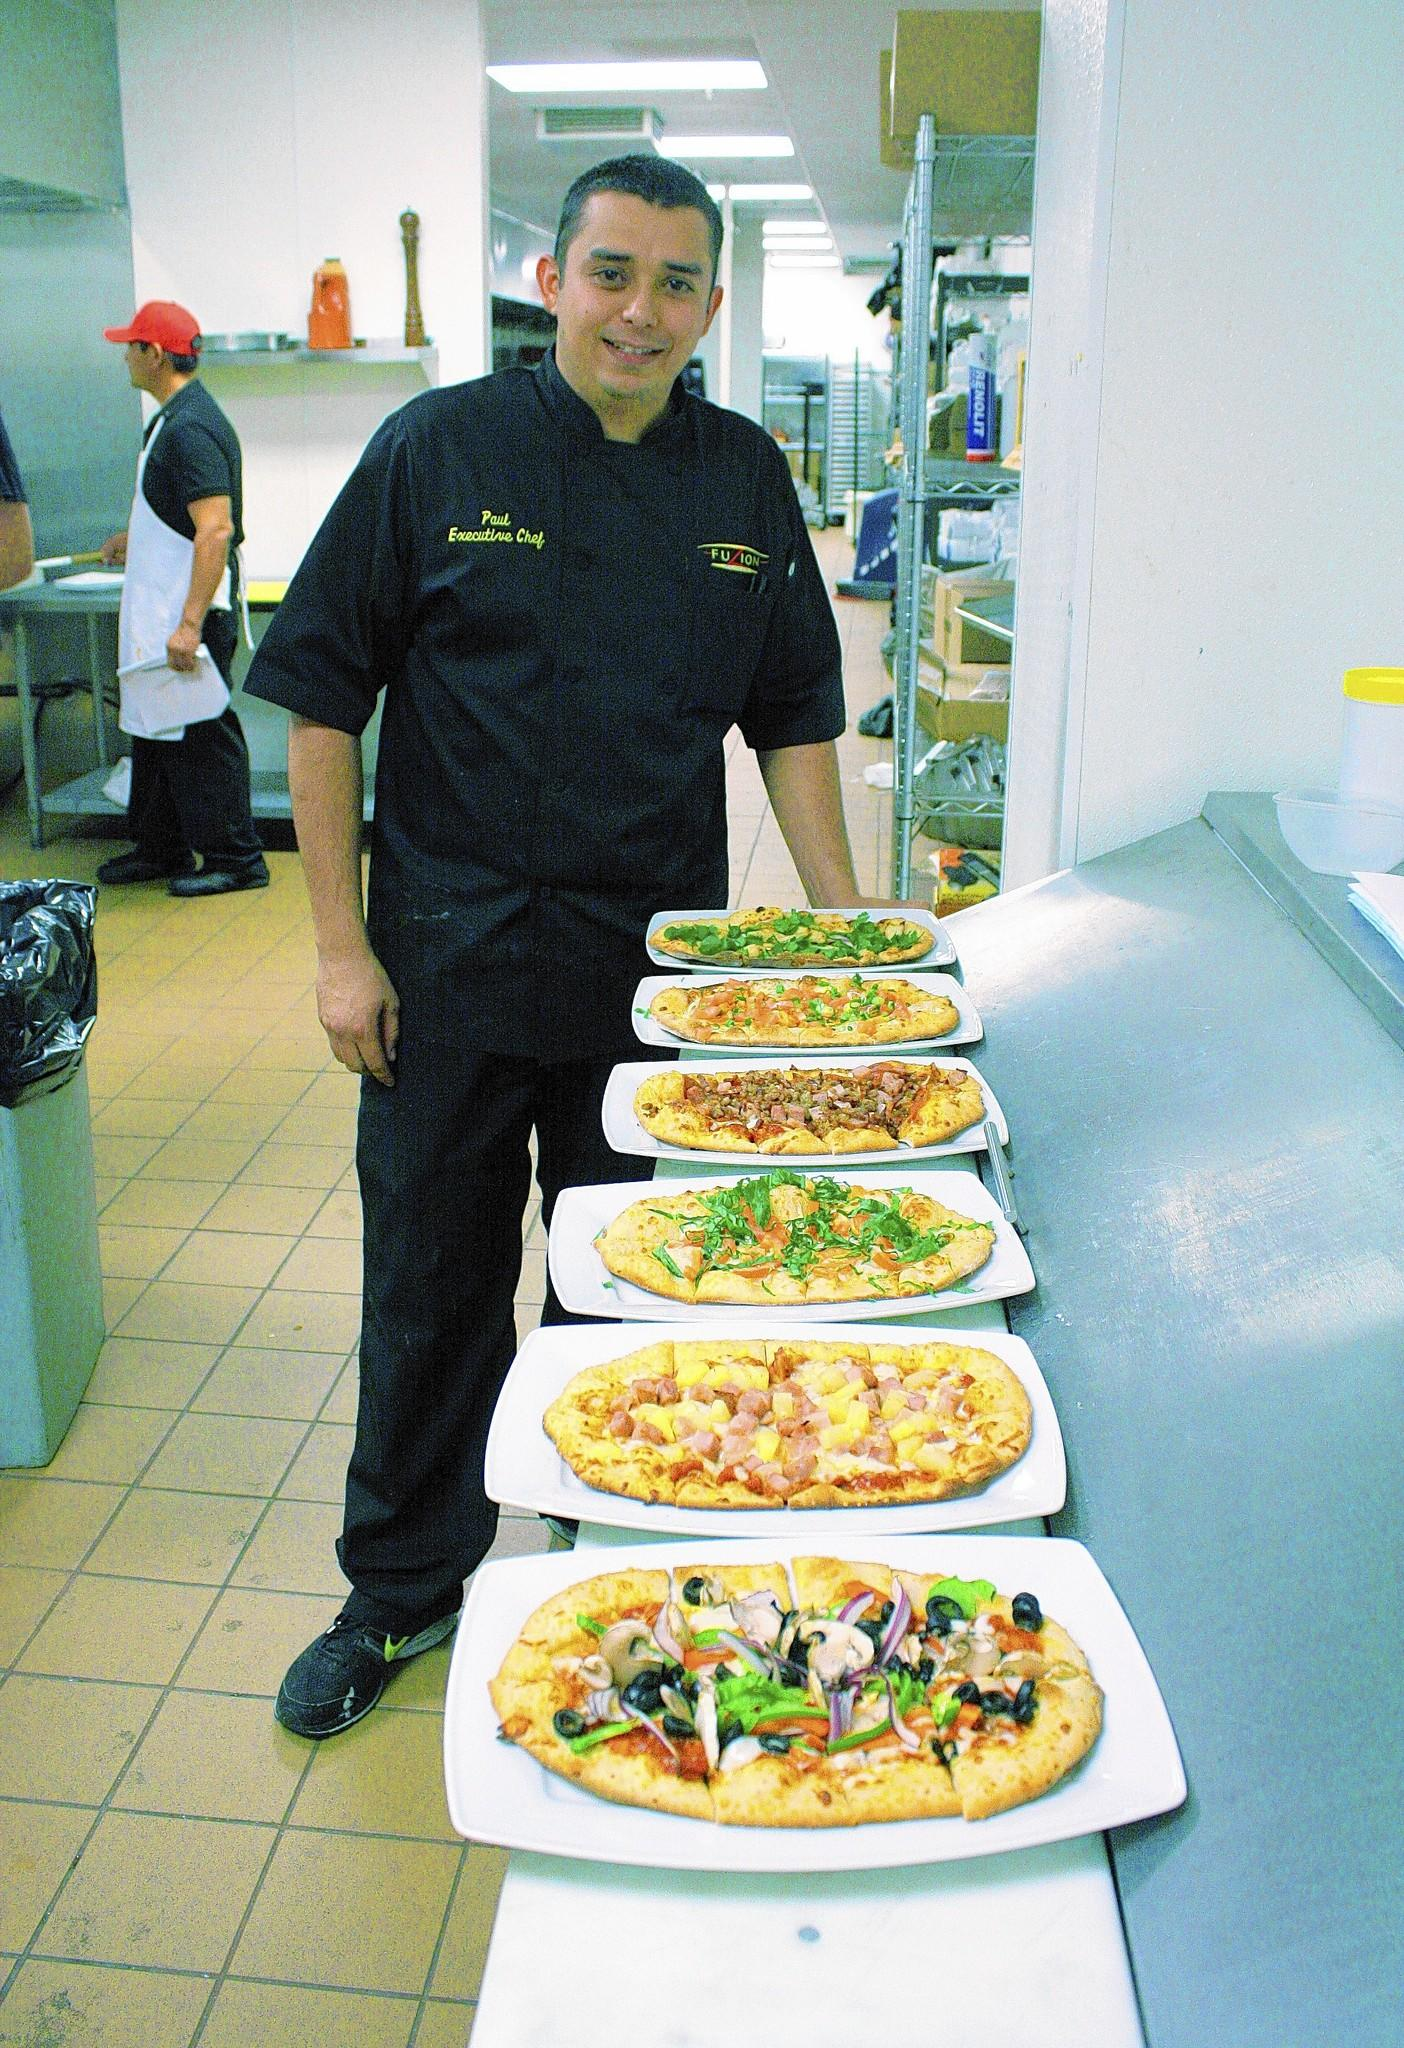 Executive Chef Paul Setola with some of his homemade pizzas.